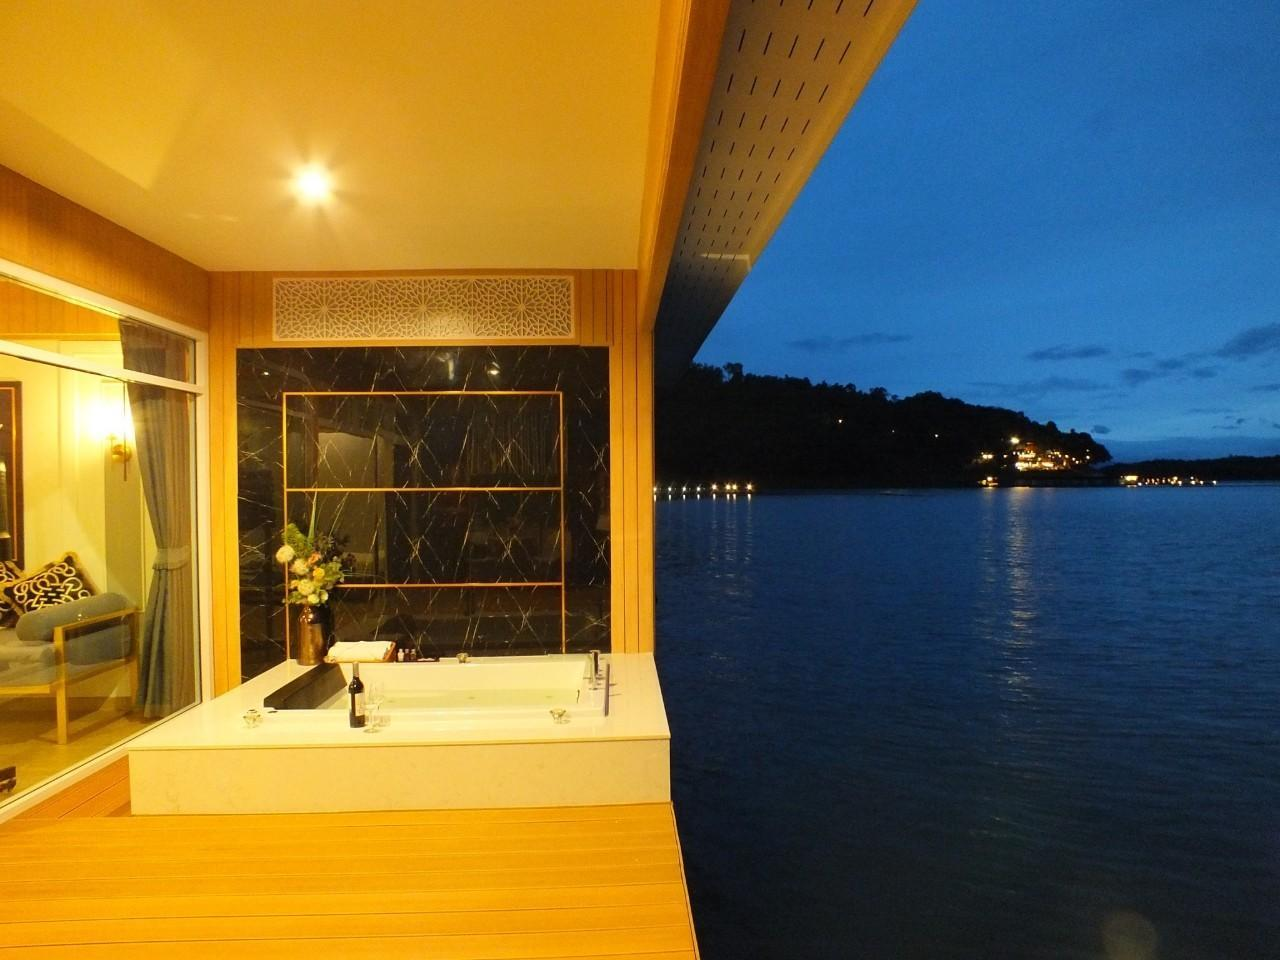 Quarto Grand Island com jacuzzi (Island Grand Room with Jacuzzi)